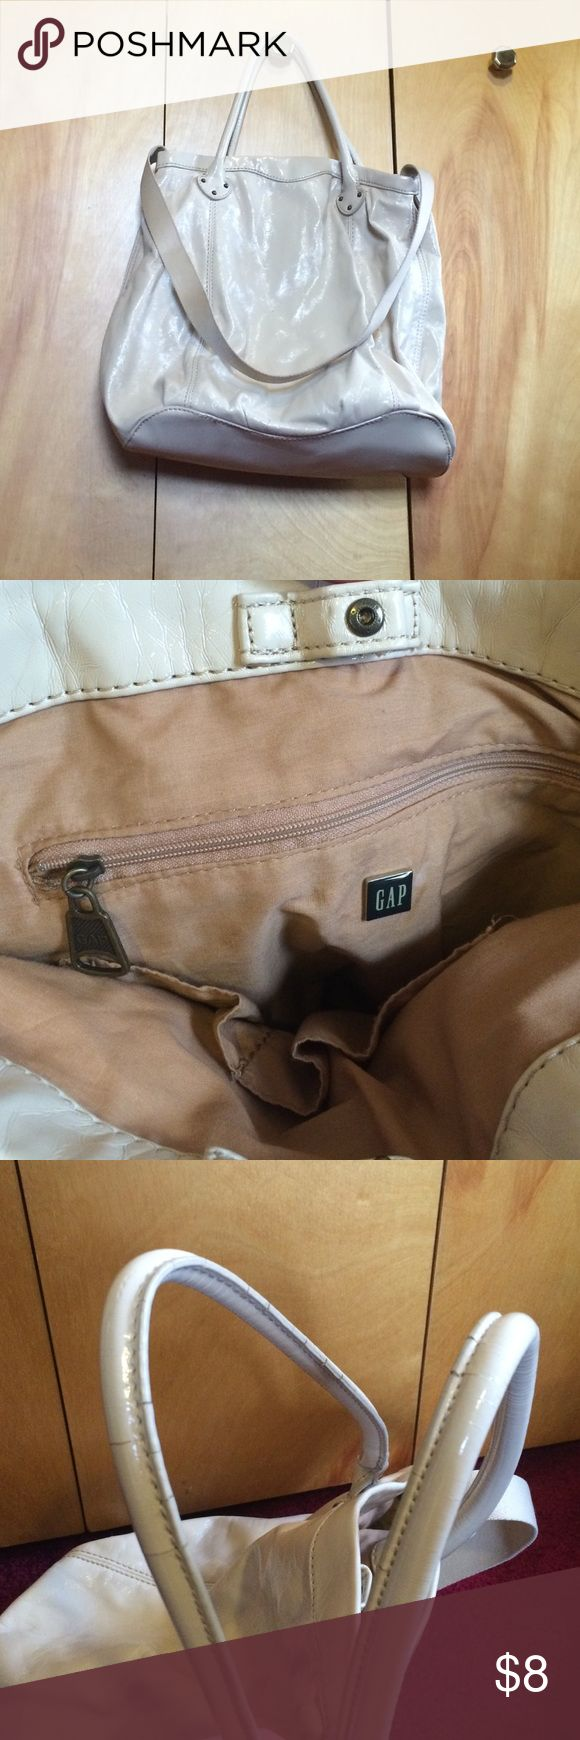 Gap Bag Cream colored Gap bag with shorter and longer handle as pictured. Bag is faux leather, has one zippered pocket and 2 open pockets on inside as pictured. Double handles have slight cracking as pictured. Worn 4-5x. GAP Bags Hobos